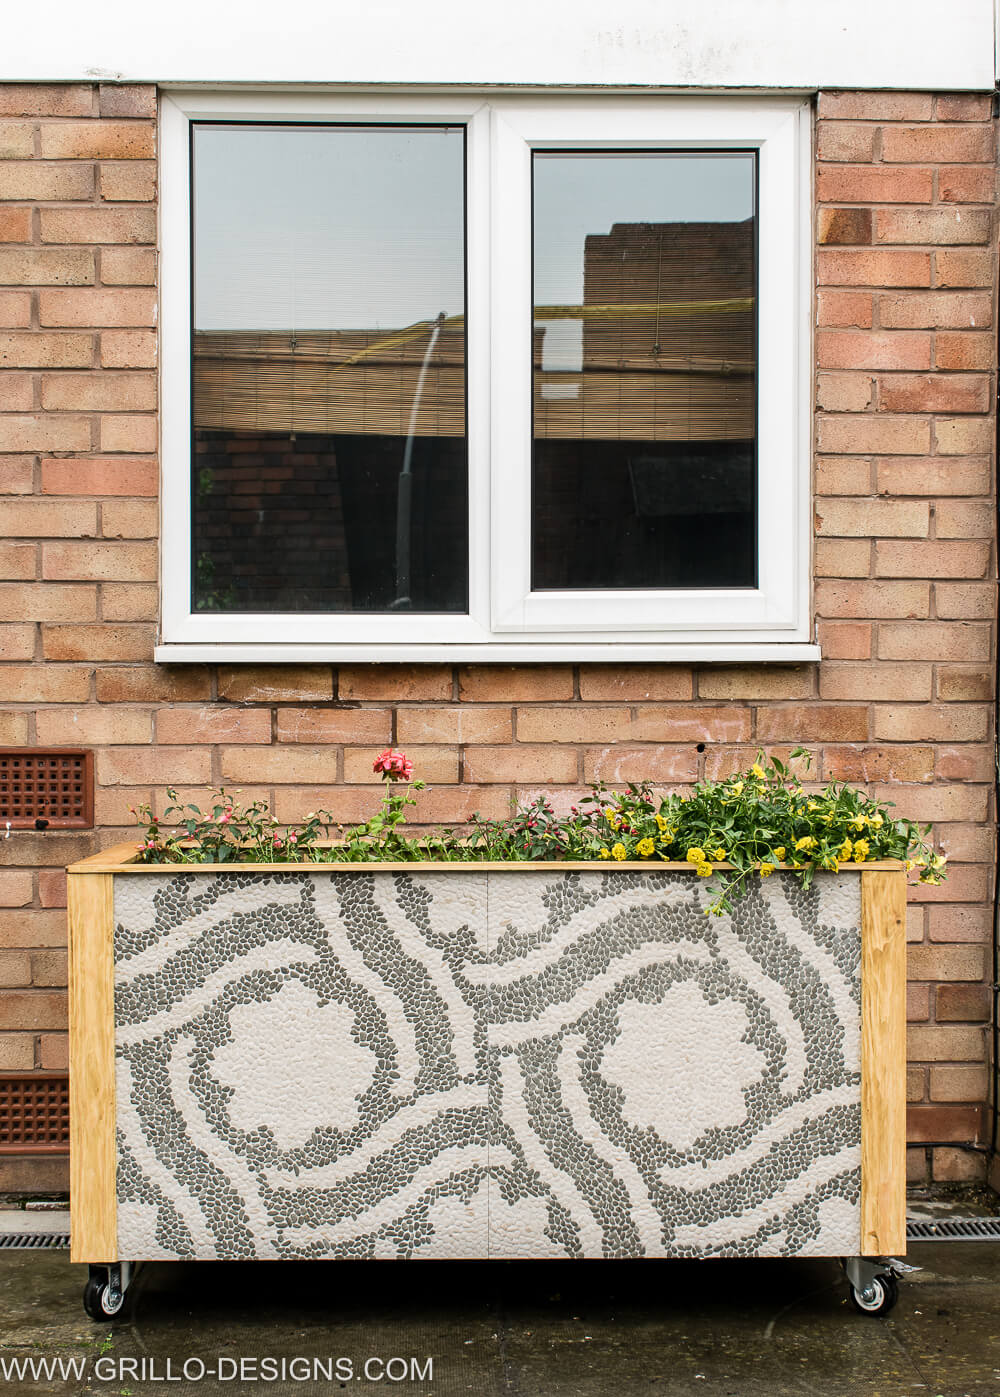 DIY RSUTIC TILE TROUGH PLANTER / GRILLO DESIGNS